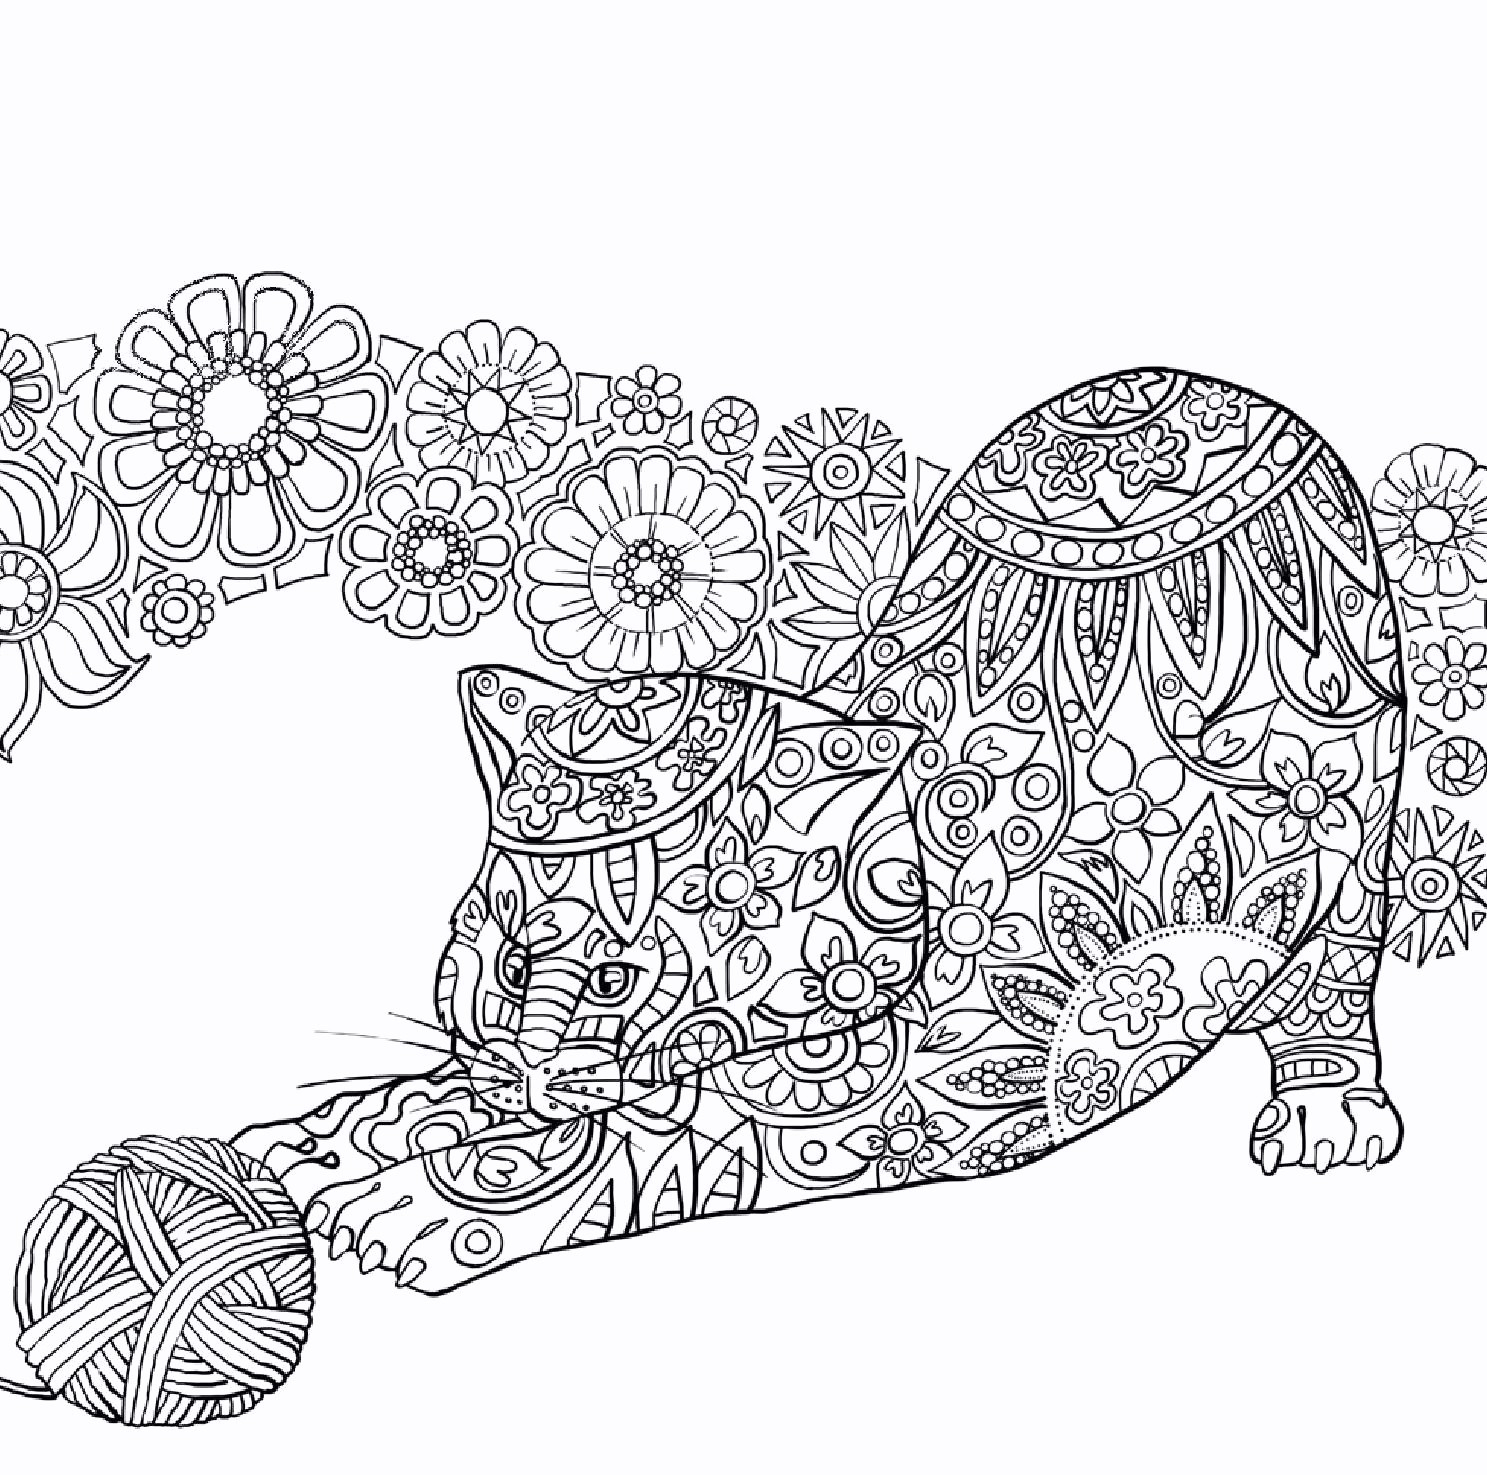 30 Free Scripture Coloring Pages Collection - Coloring Sheets